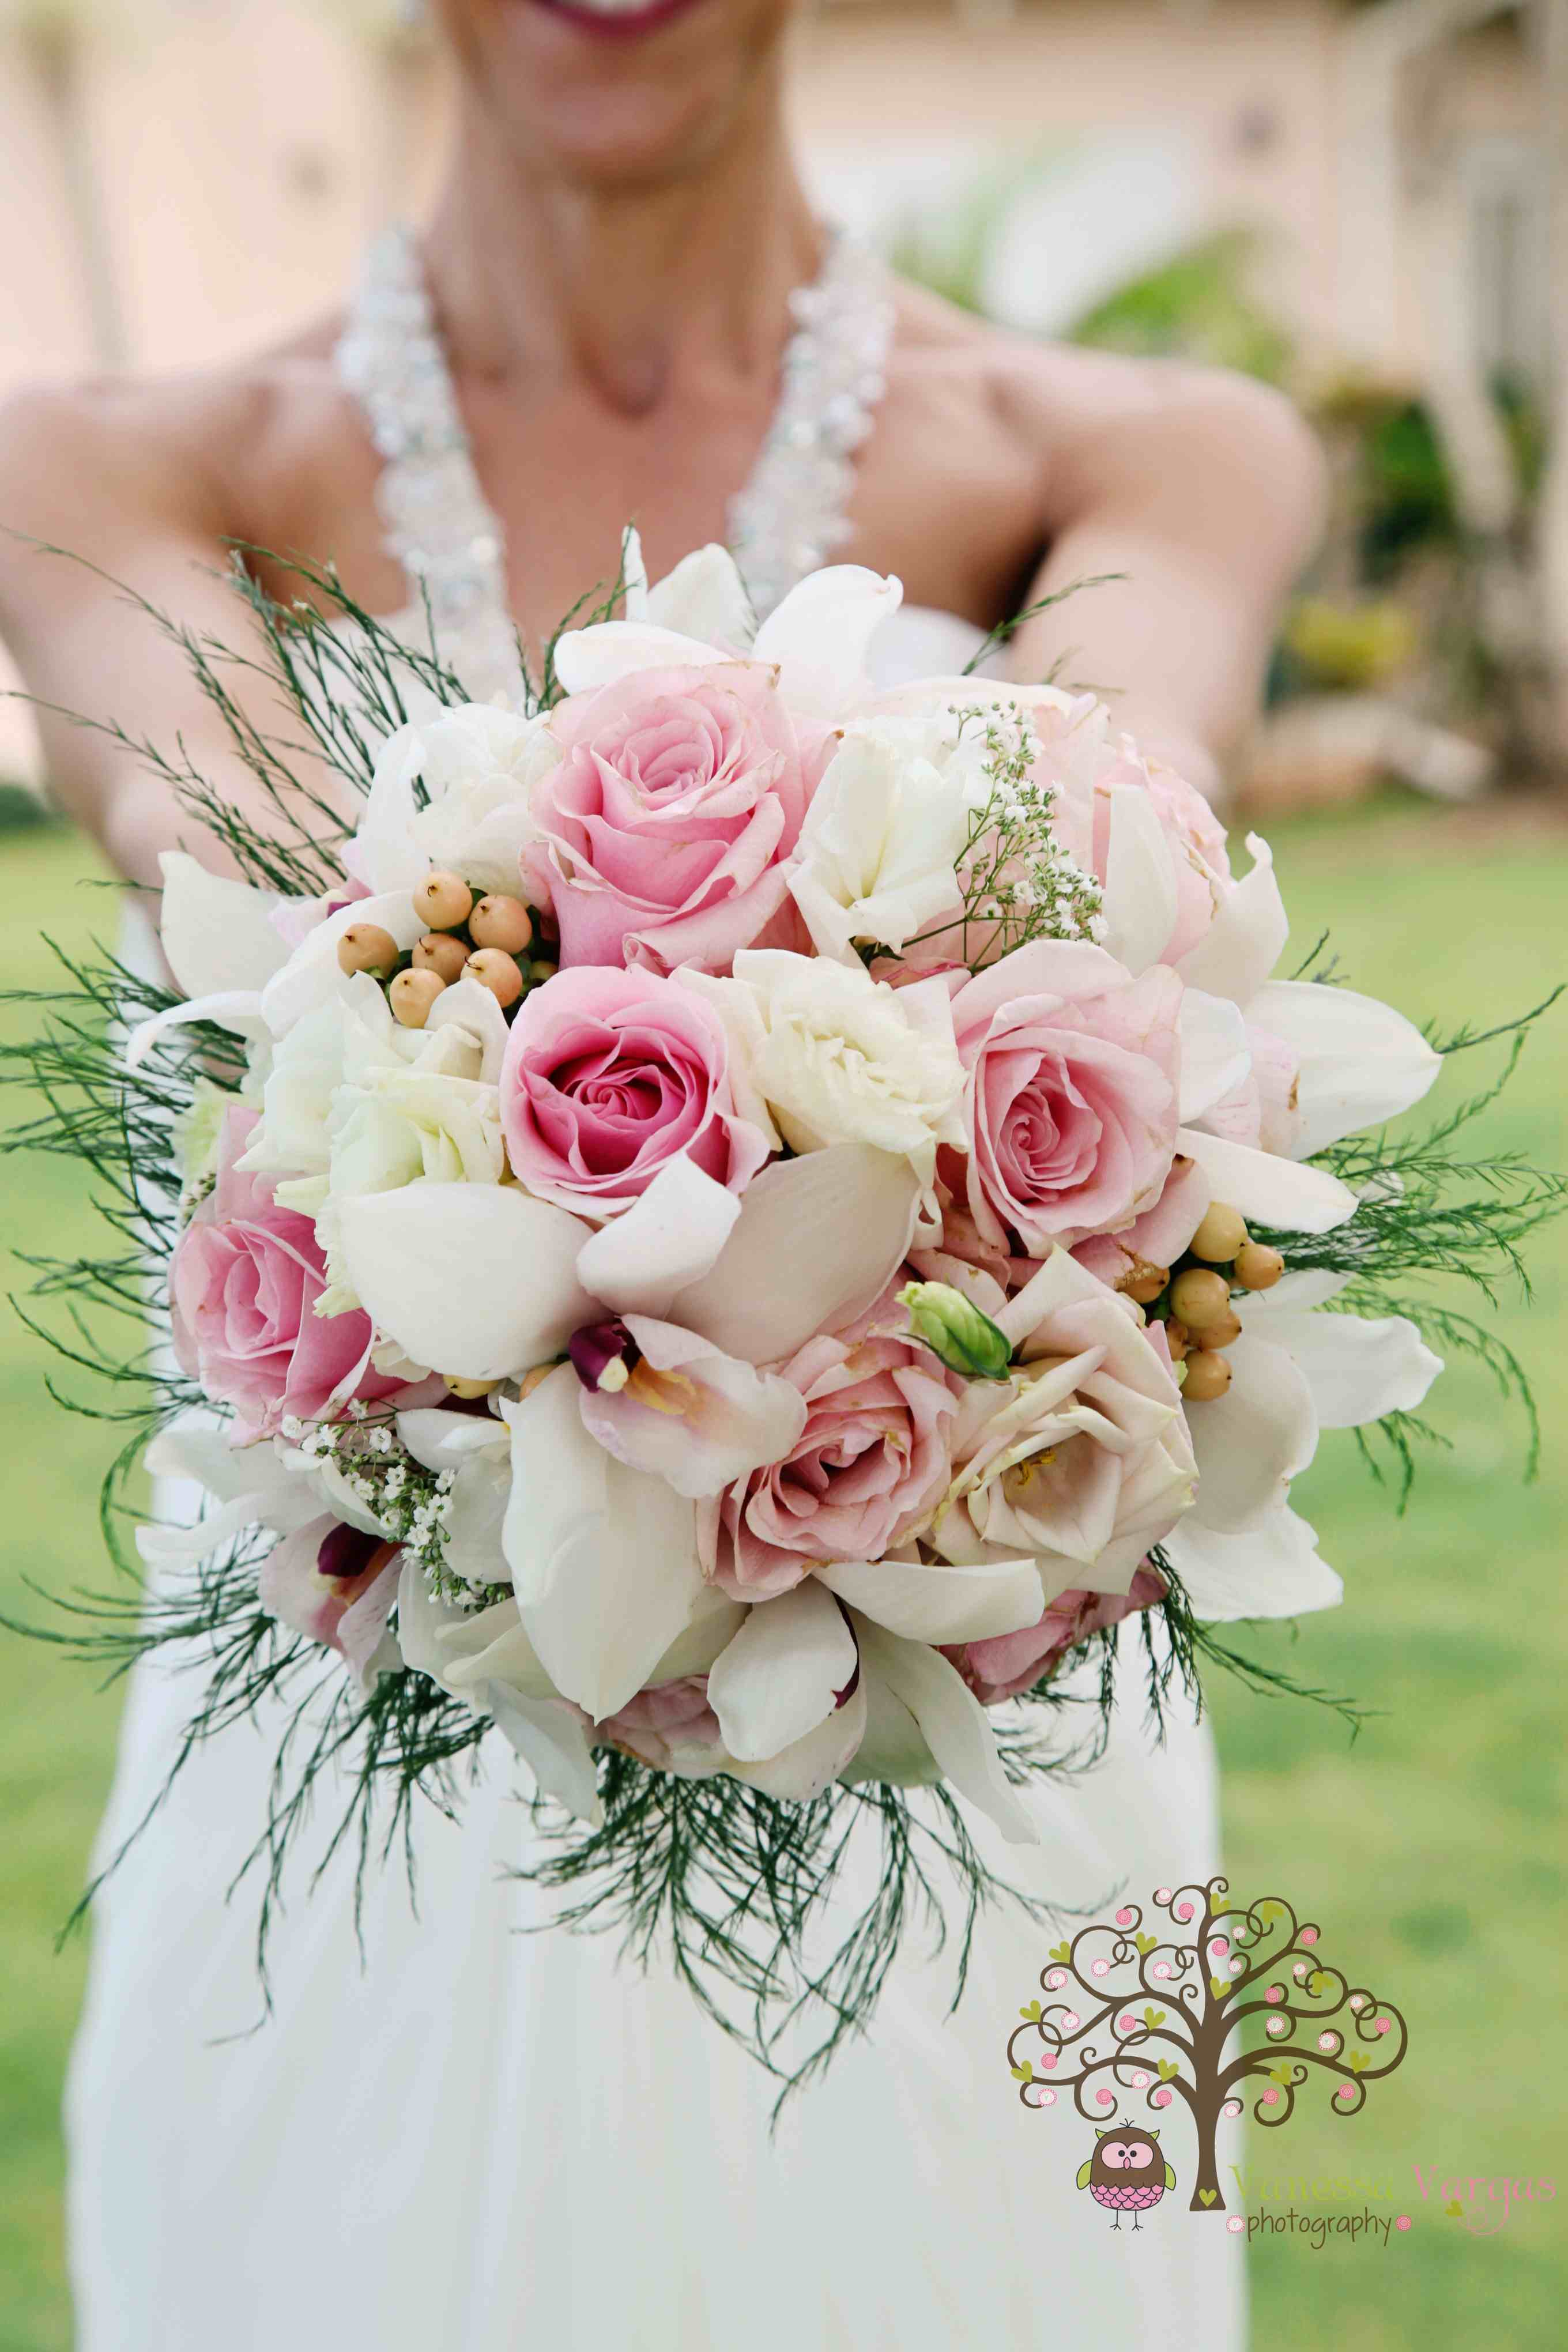 Pink And White Wedding Bouquet Cheaper Than Retail Price Buy Clothing Accessories And Lifestyle Products For Women Men